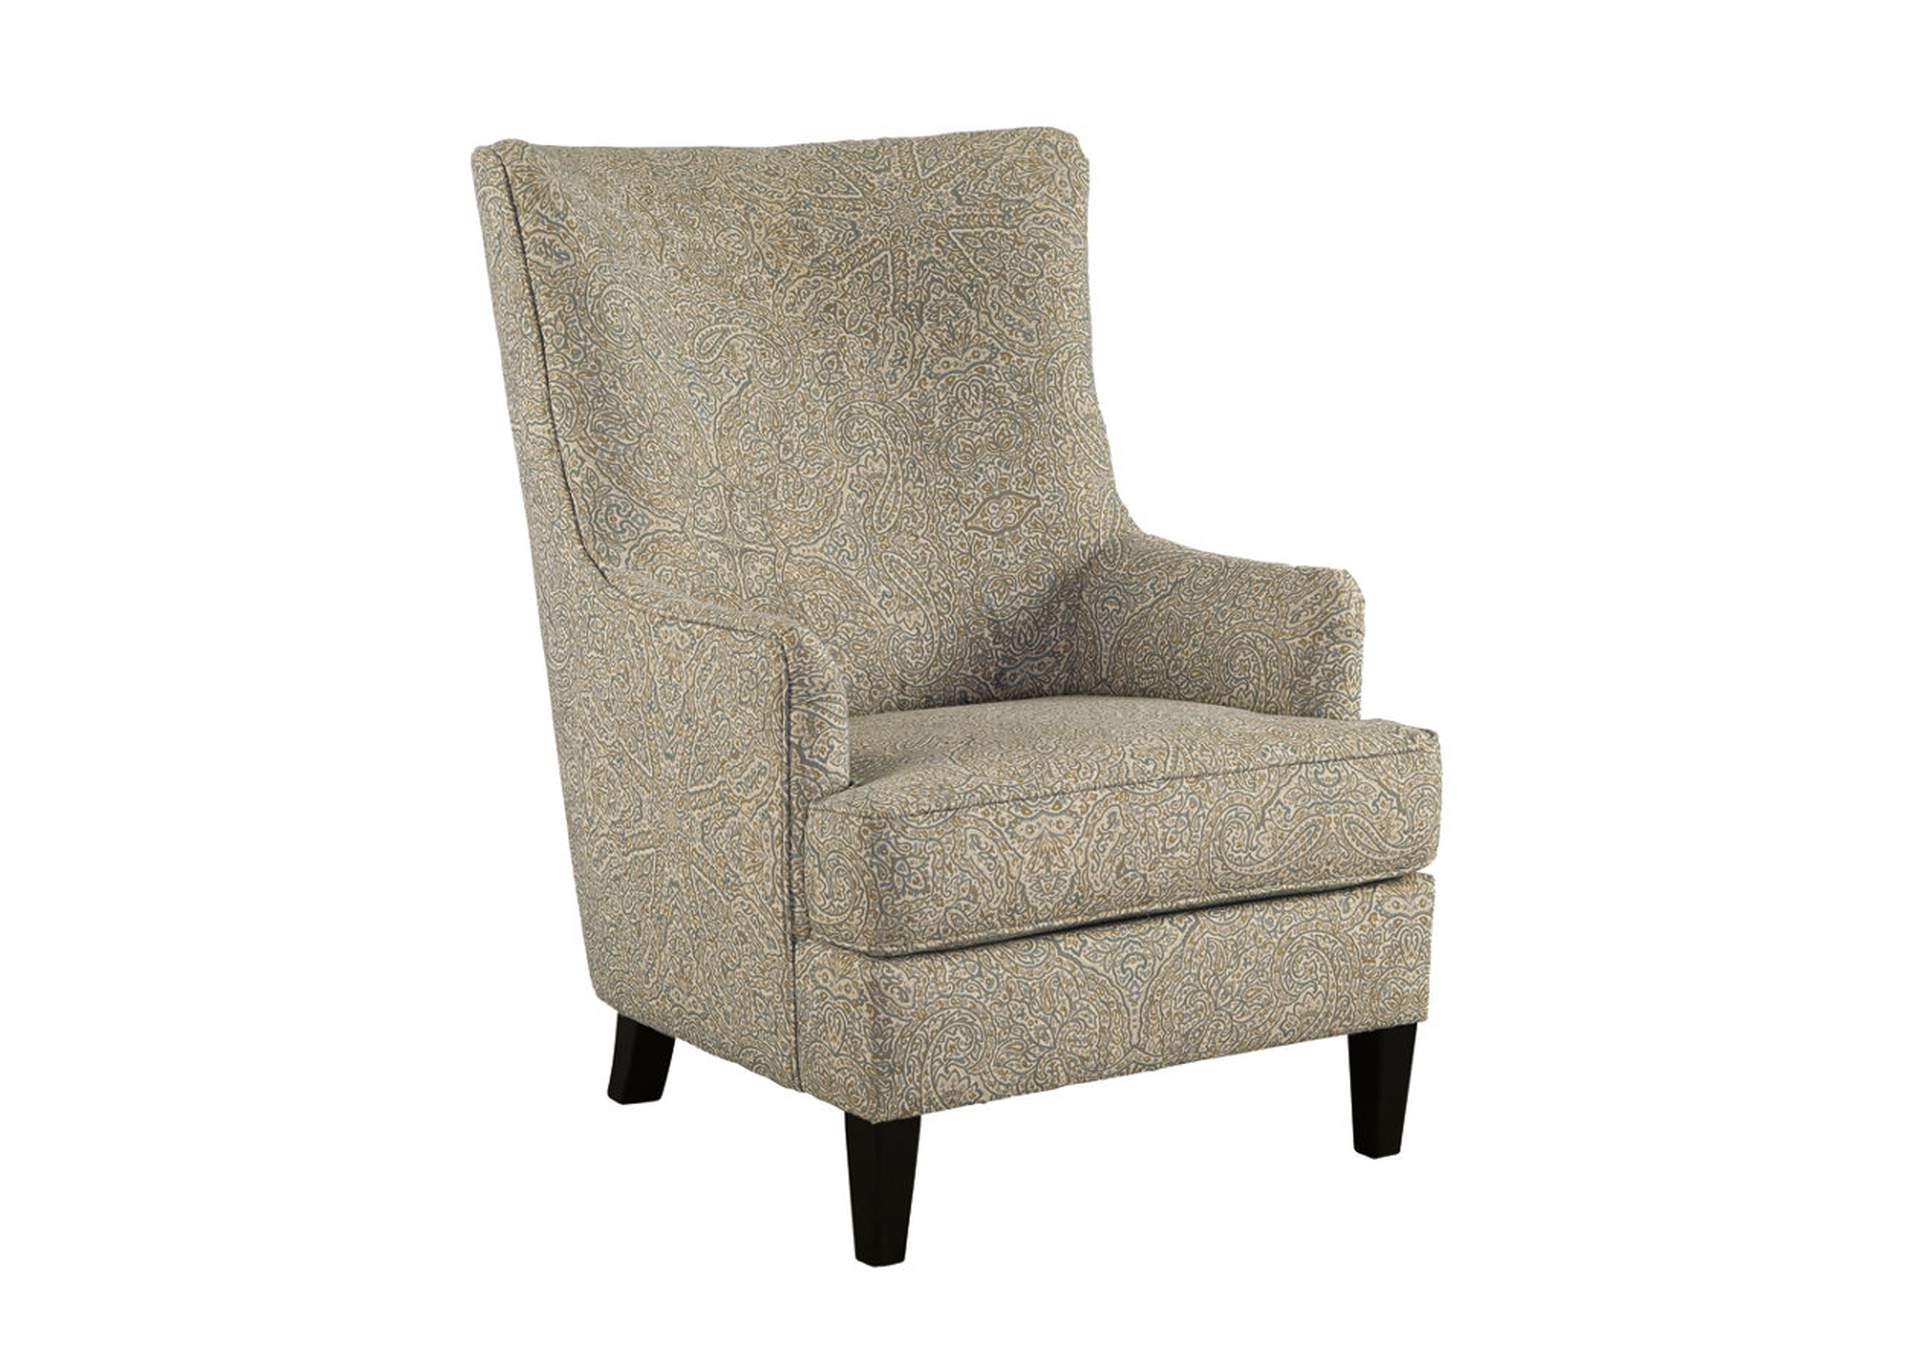 Kieran Natural Accent Chair,Signature Design By Ashley